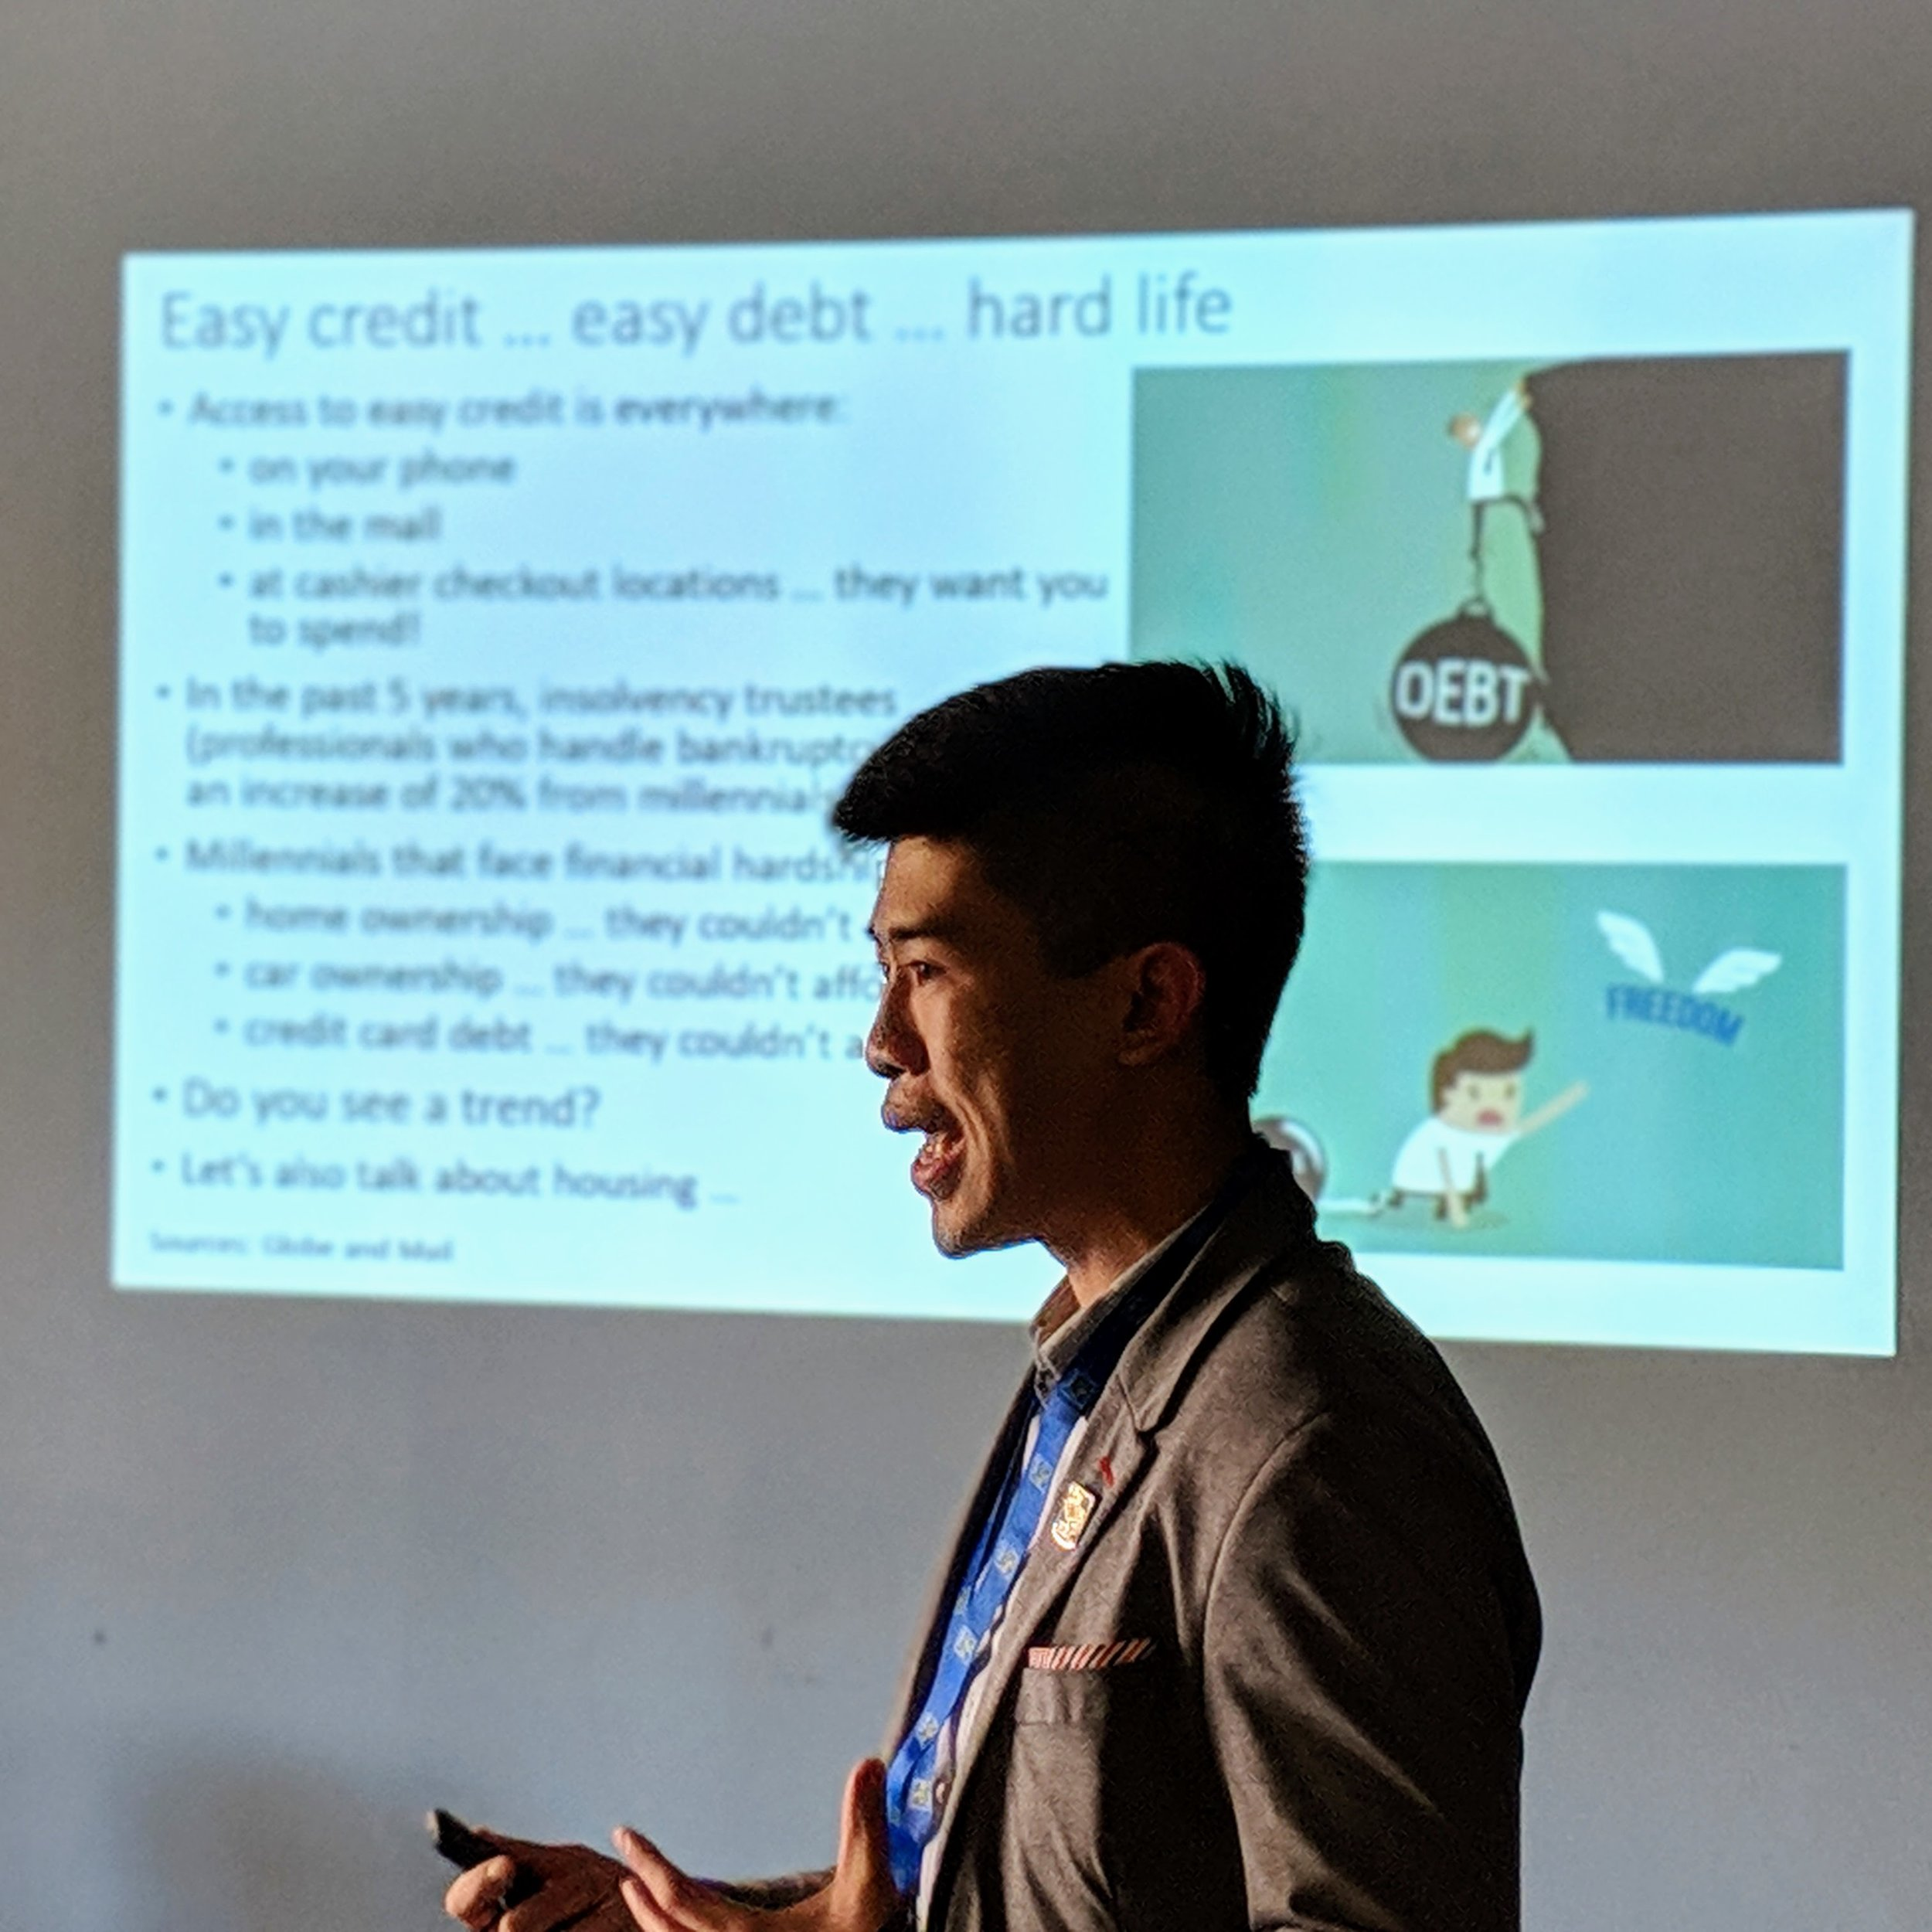 Arthur Chung, a Schulich School of Business BBA alumni, and now a Manager at Strategy & Transformation at RBC, presents his content on personal finance.